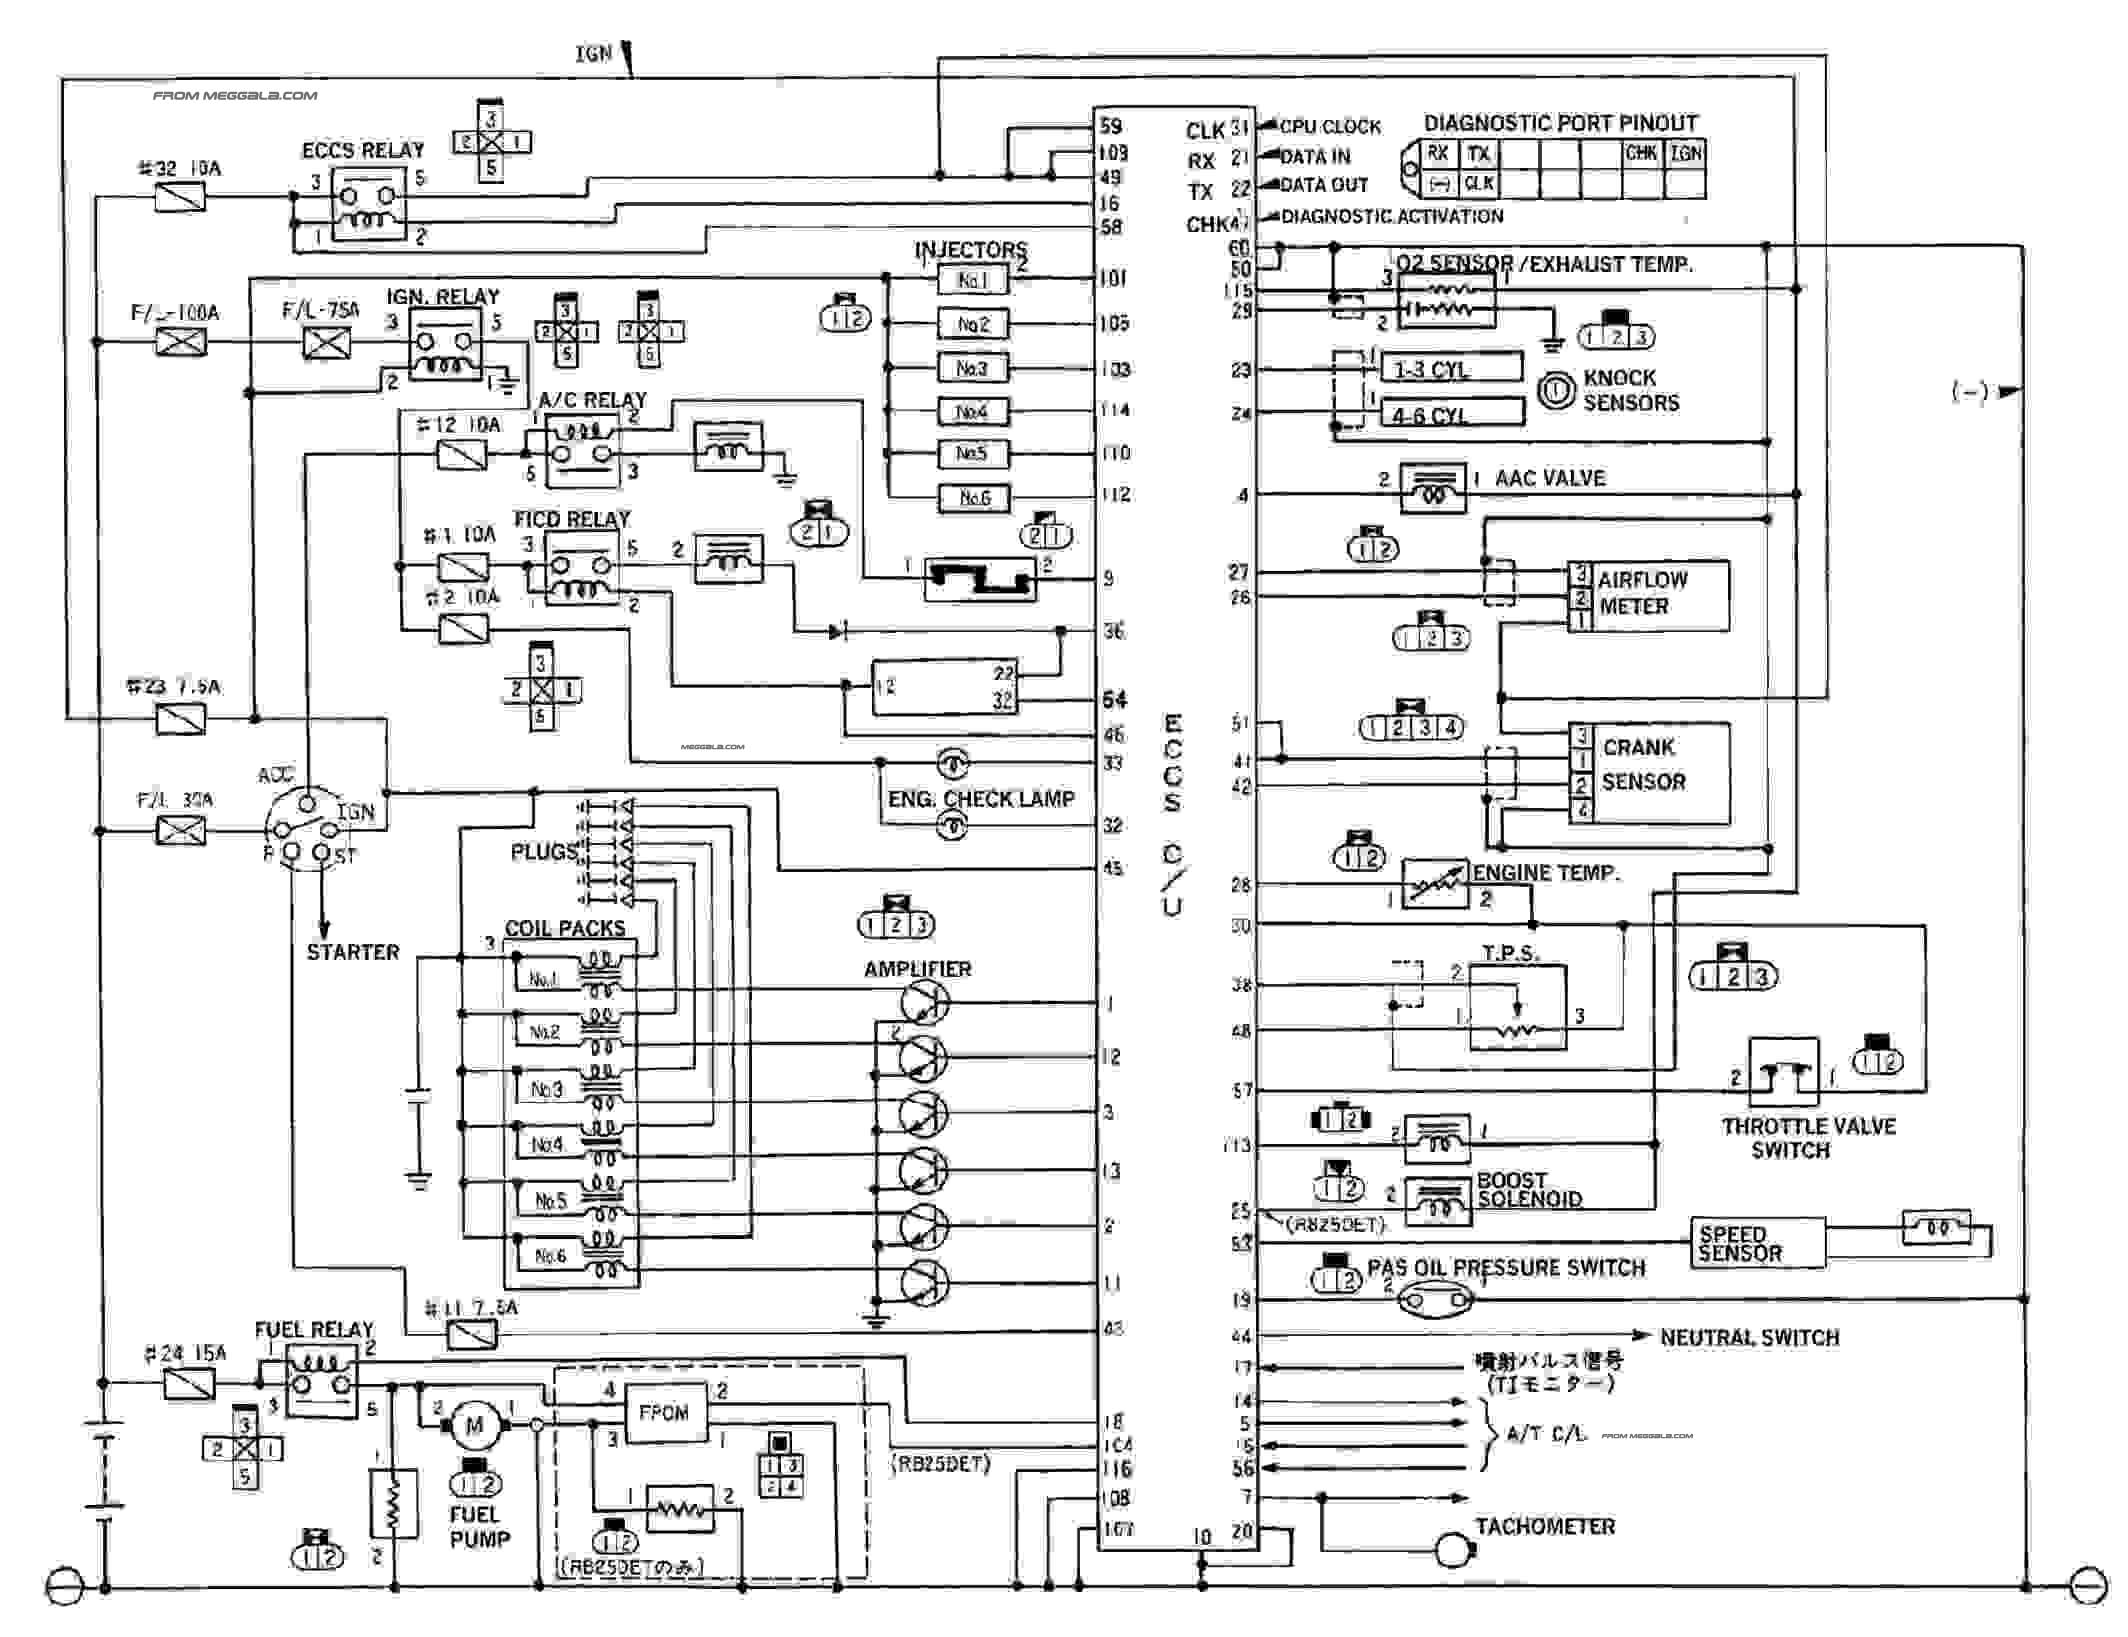 2000 hyundai accent stereo wiring diagram wiring diagram and hernes 2000 nissan maxima radio wiring diagram schematics and